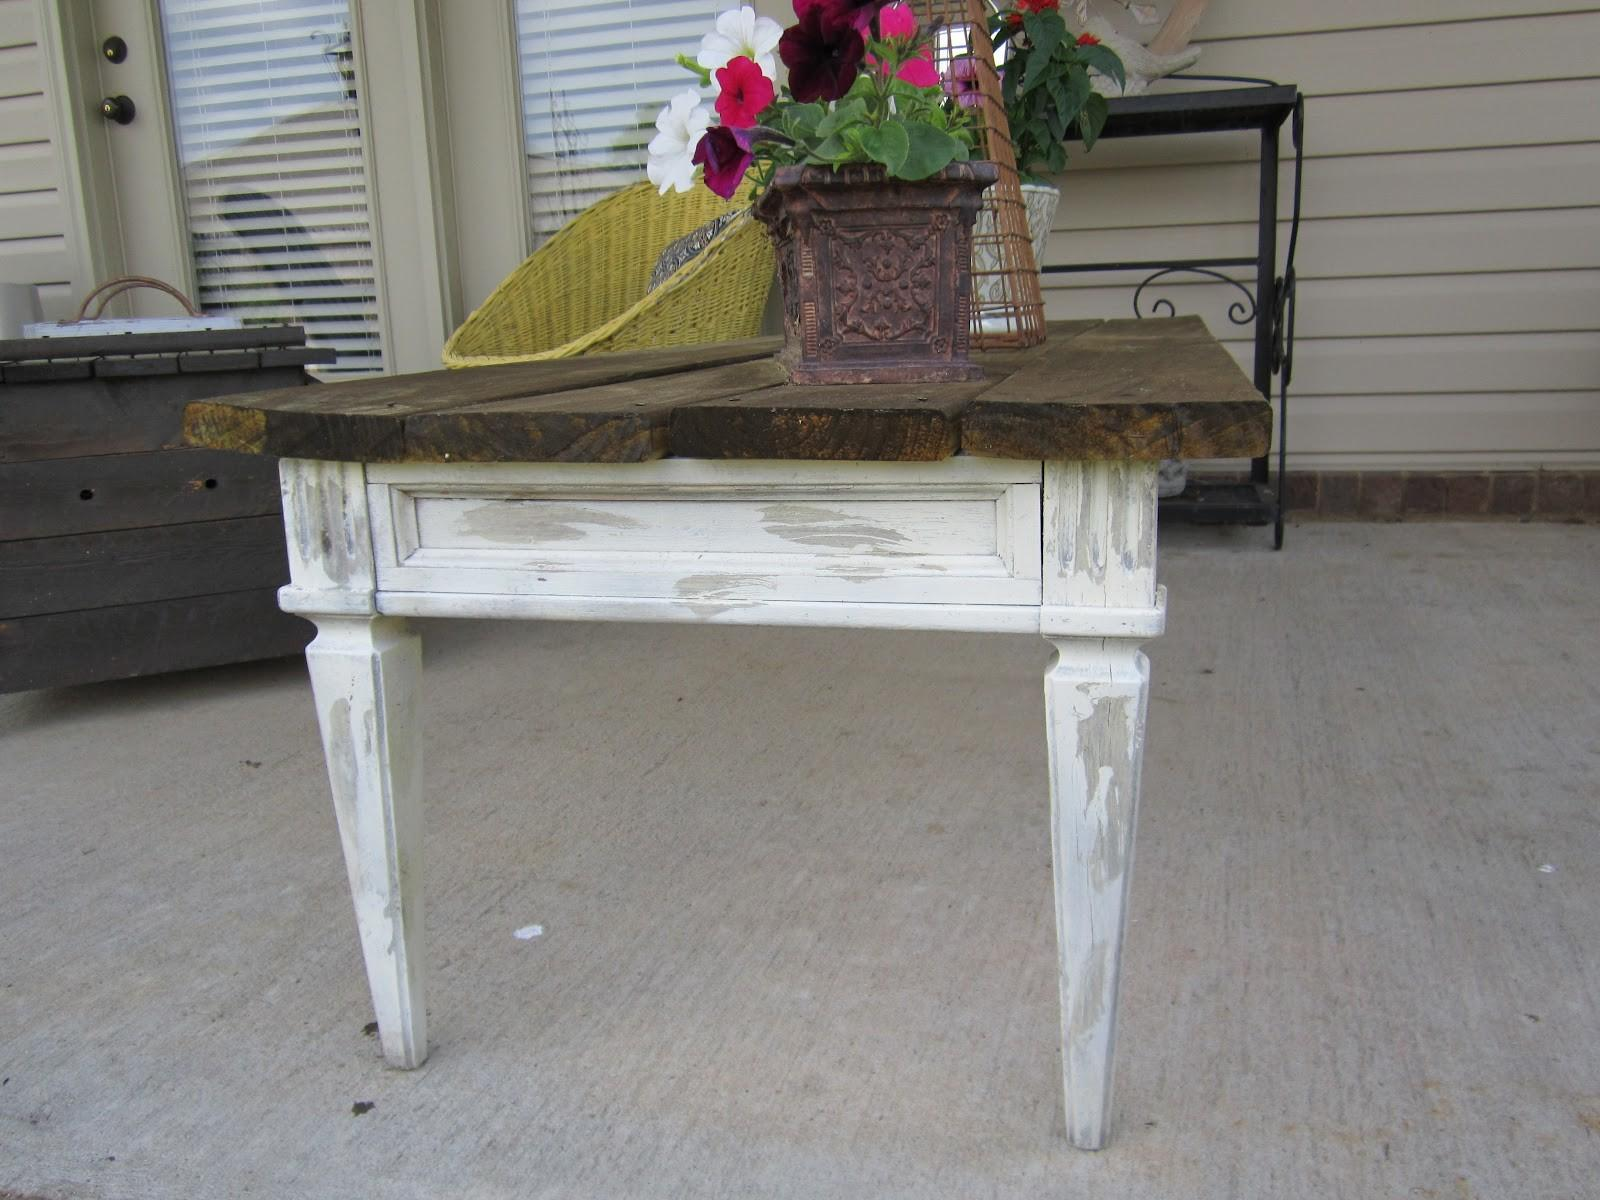 Vintage Finds Patio Coffee Table Makeover